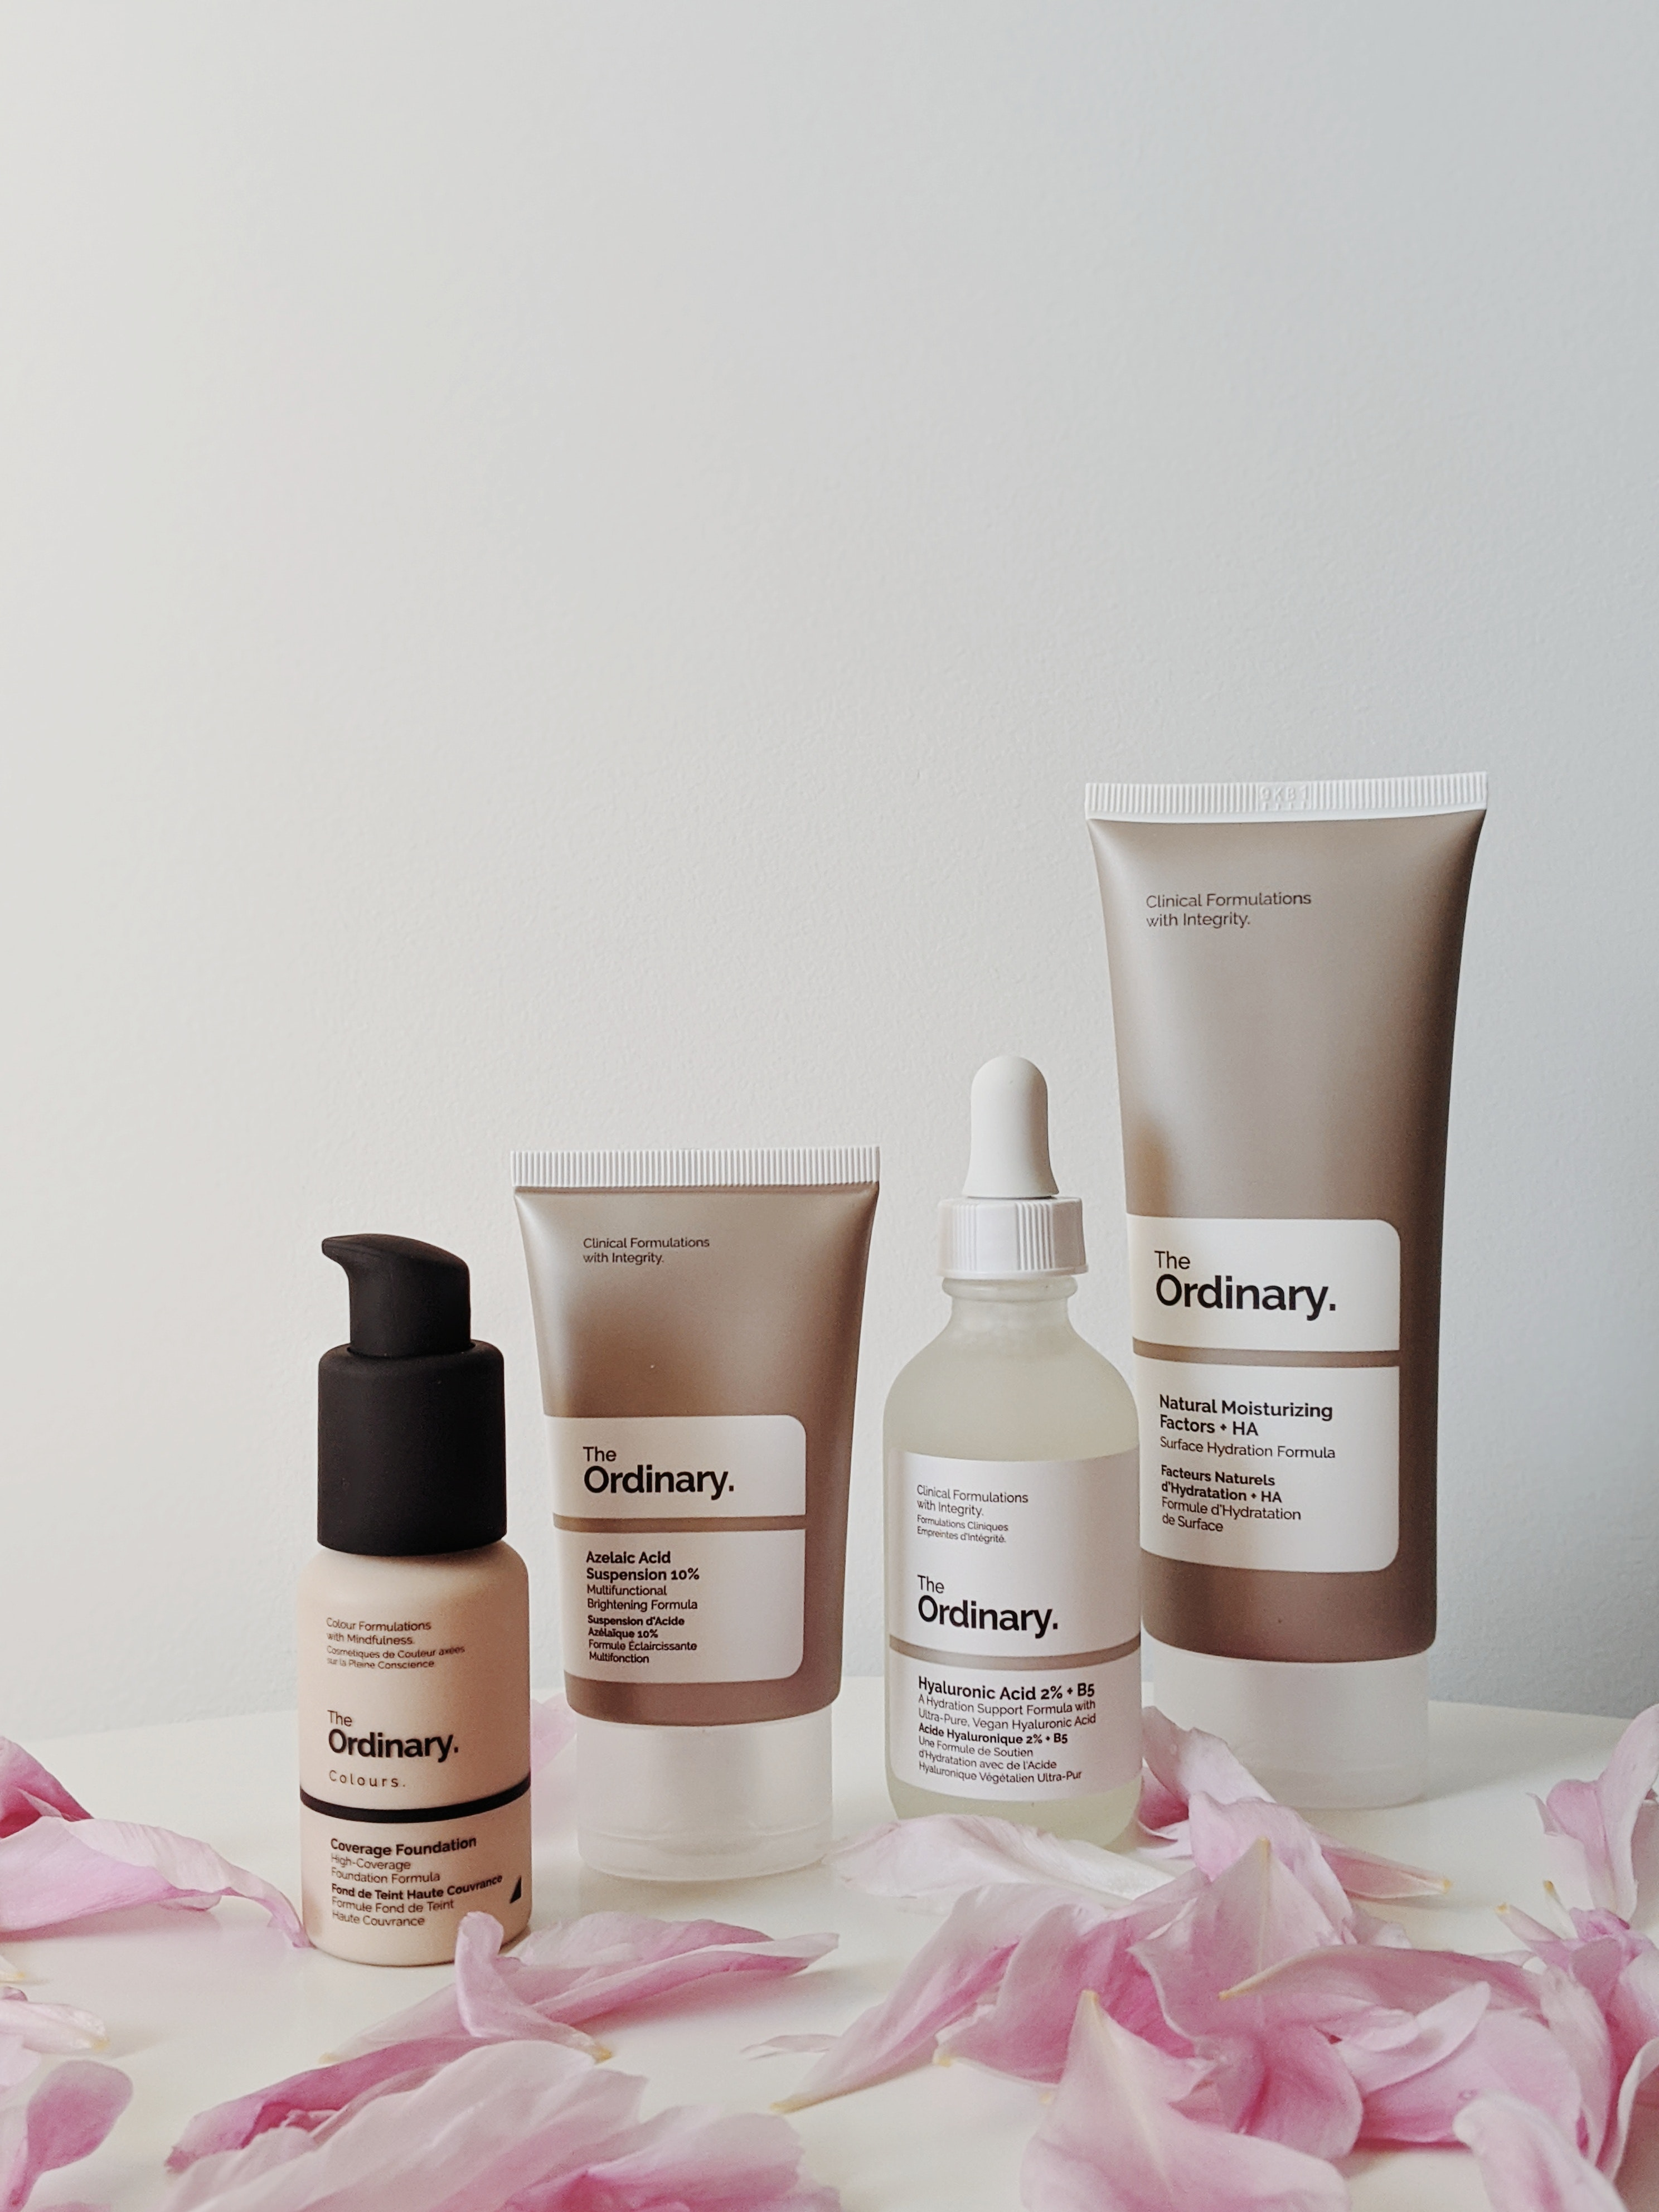 The Ordinary Product Line · Free Stock Photo